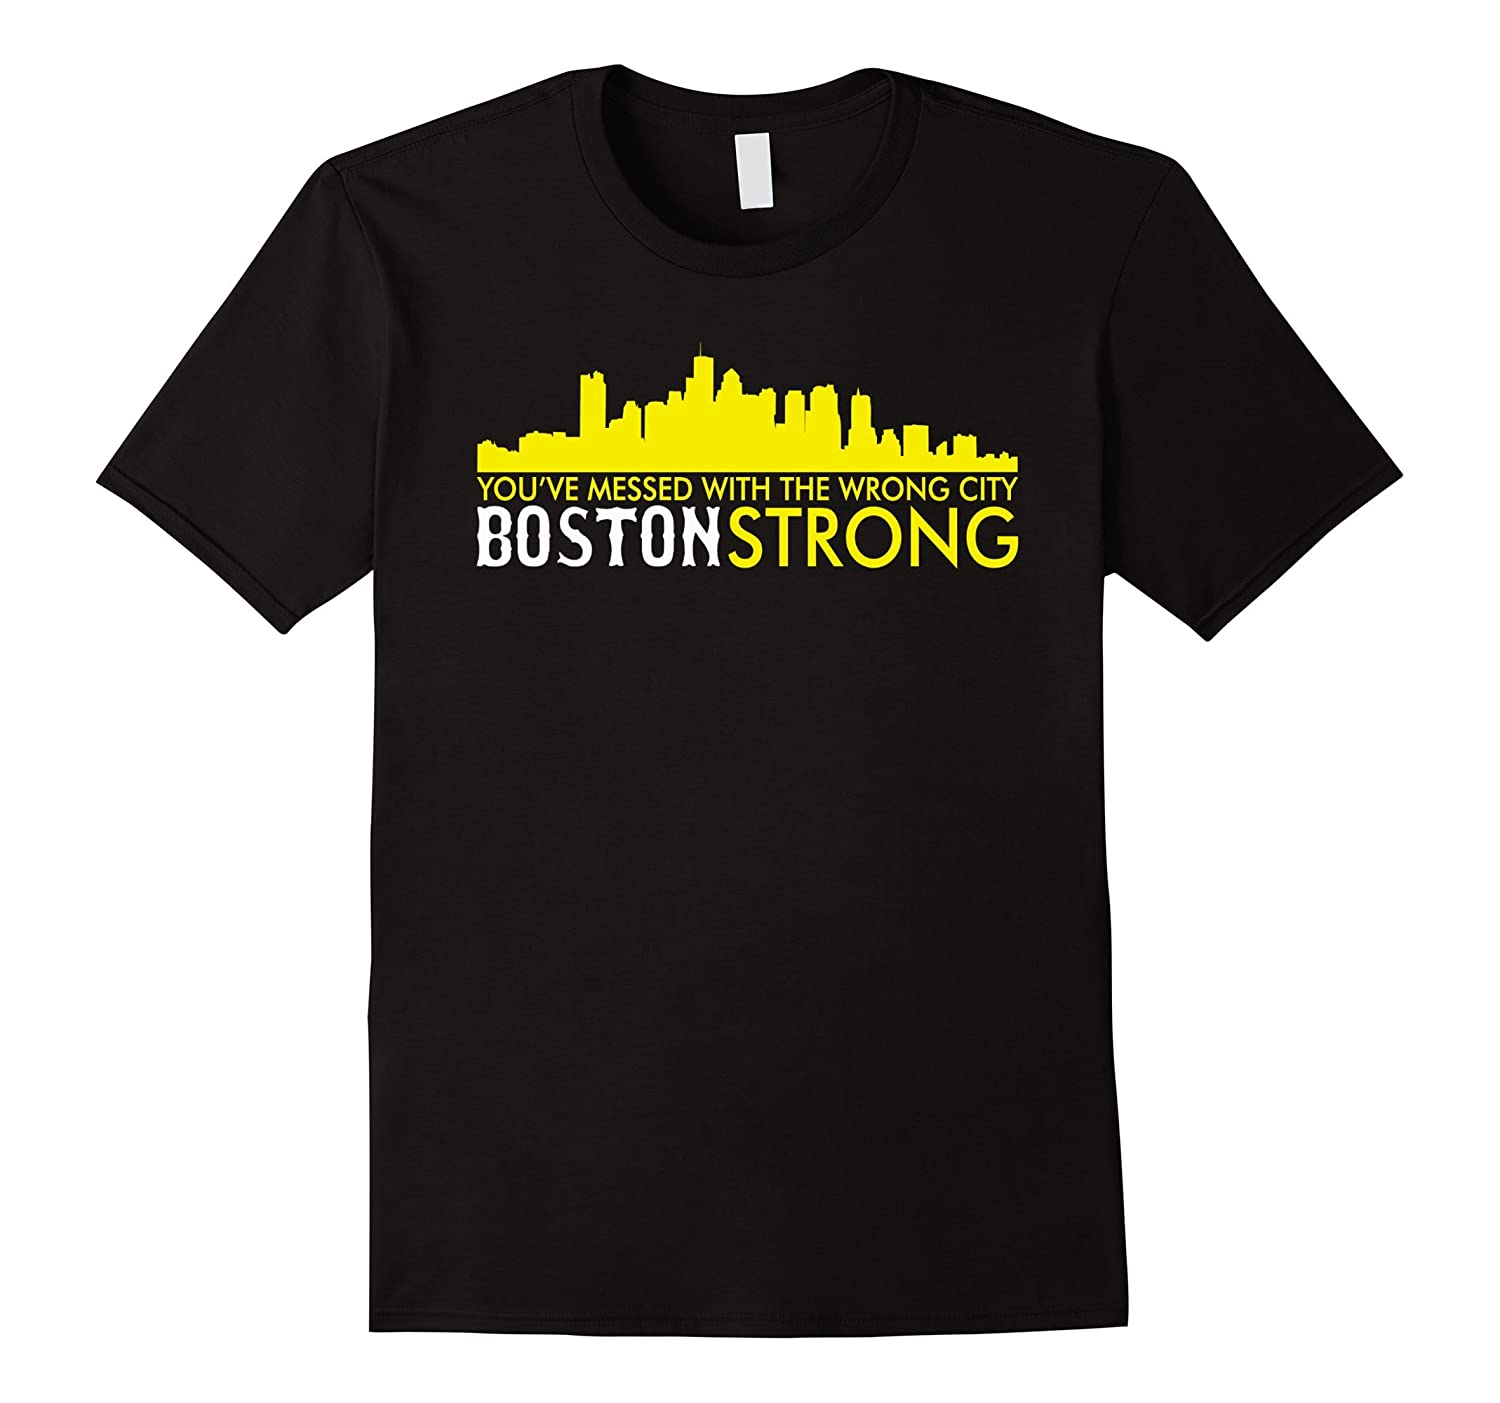 You Messed With the wrong city Boston Strong t shirt-RT